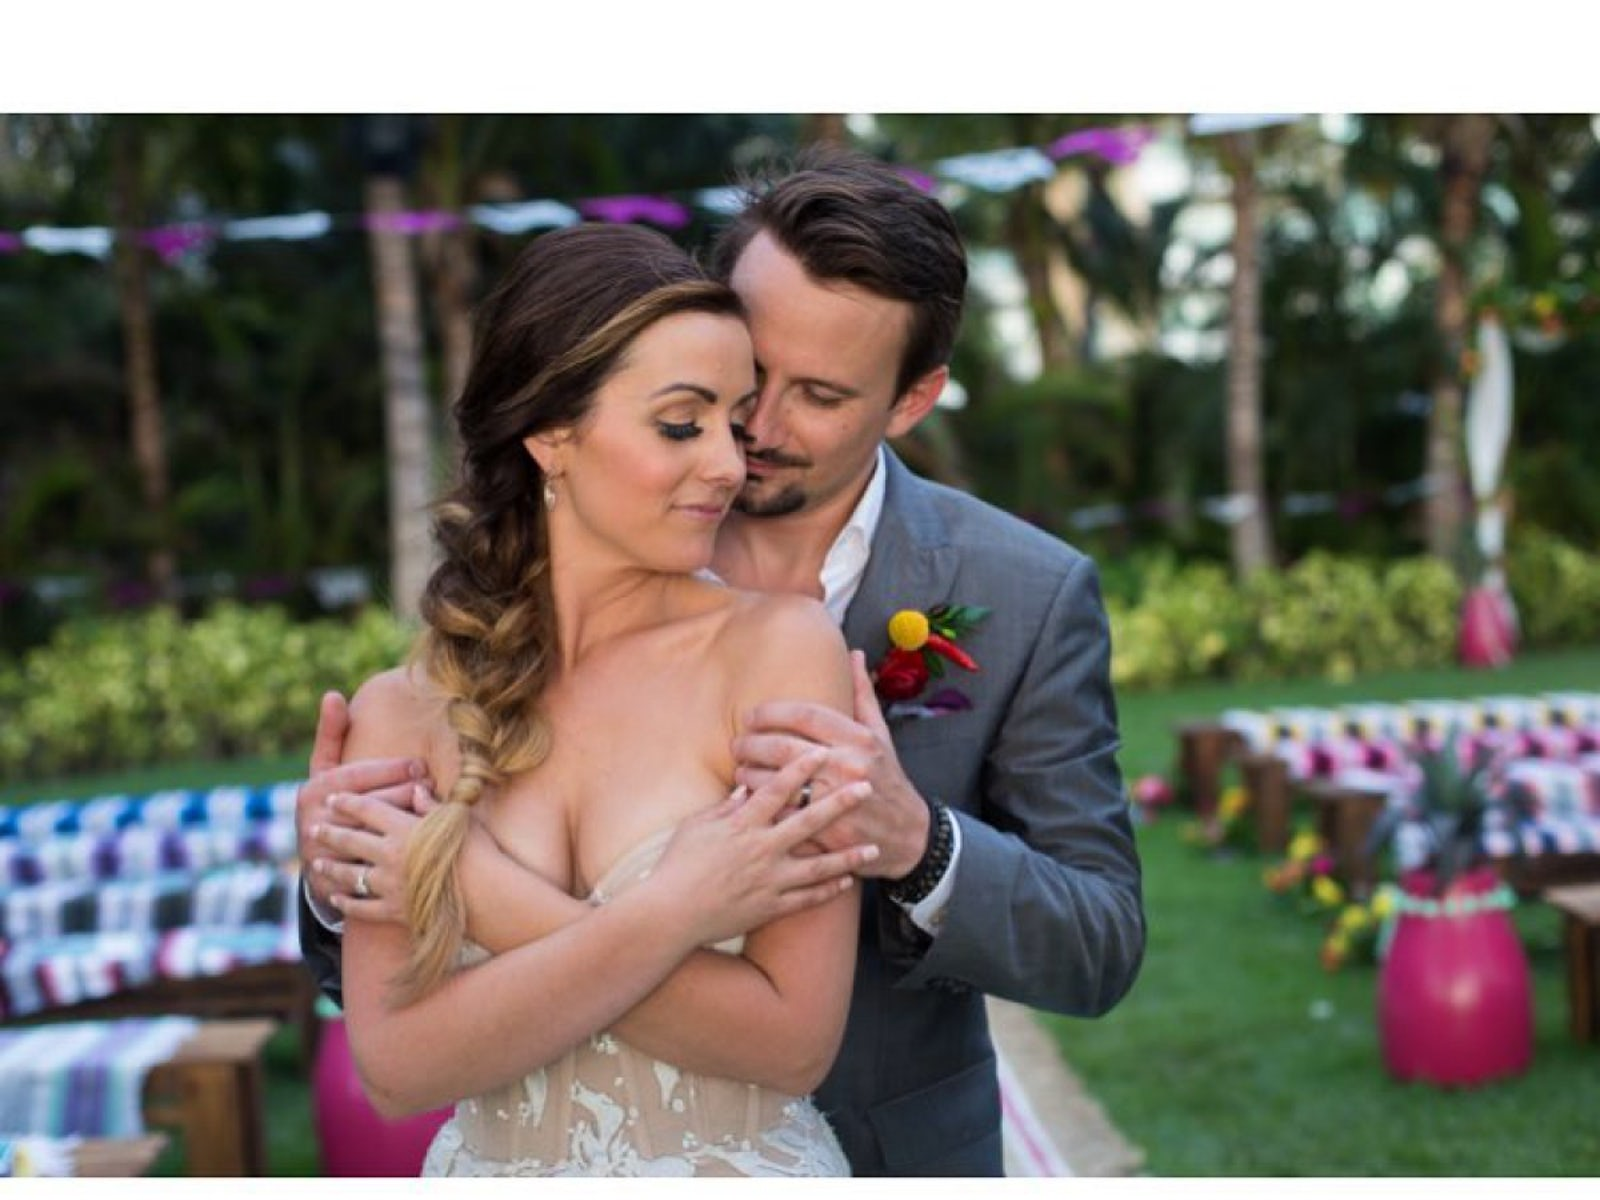 Carly And Evan Wedding.Carly Waddell Chose New Ring Before Bachelor In Paradise Wedding